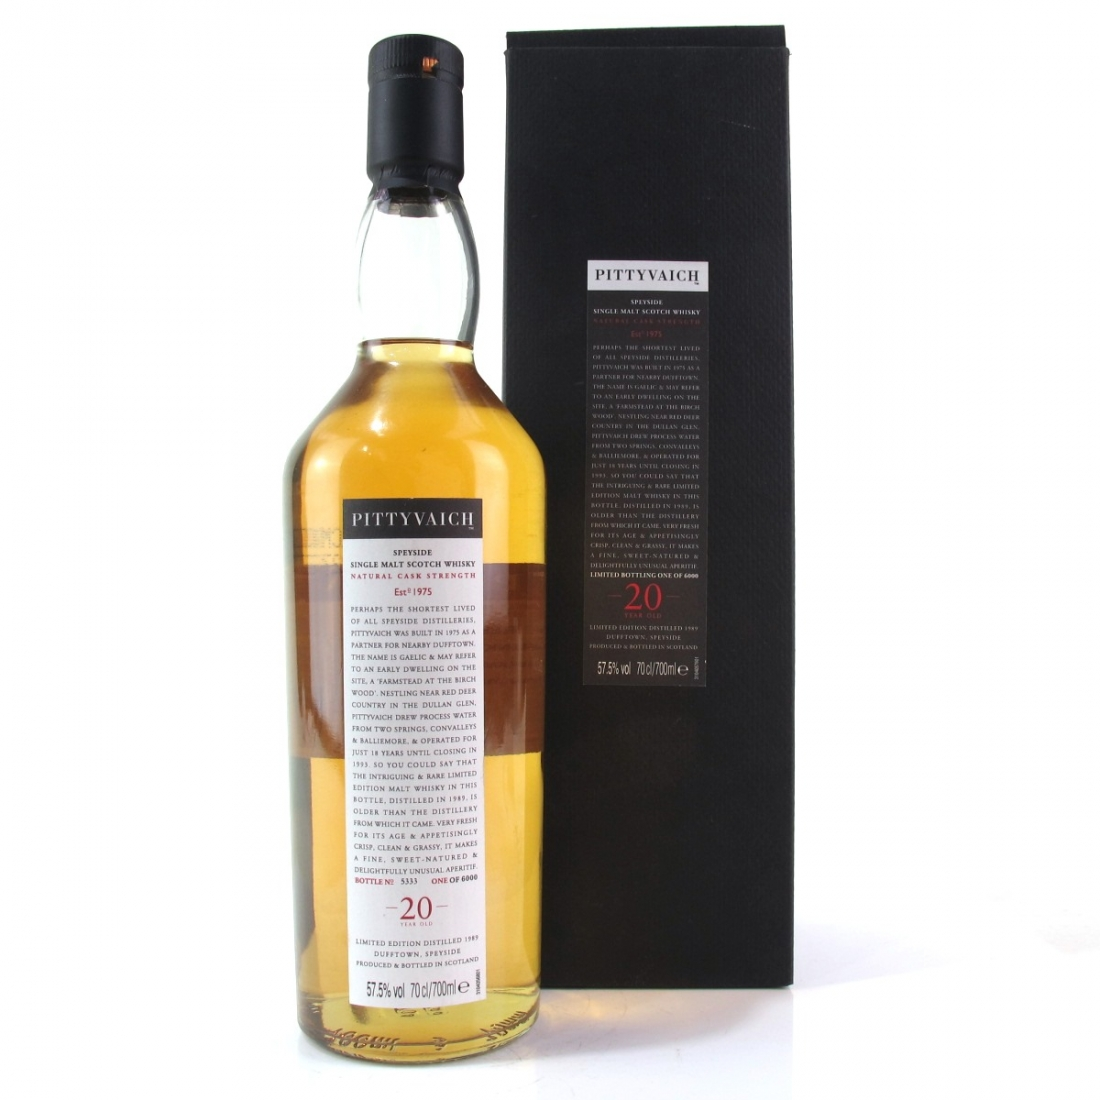 Pittyvaich 1989 20 Year Old / 2009 Release